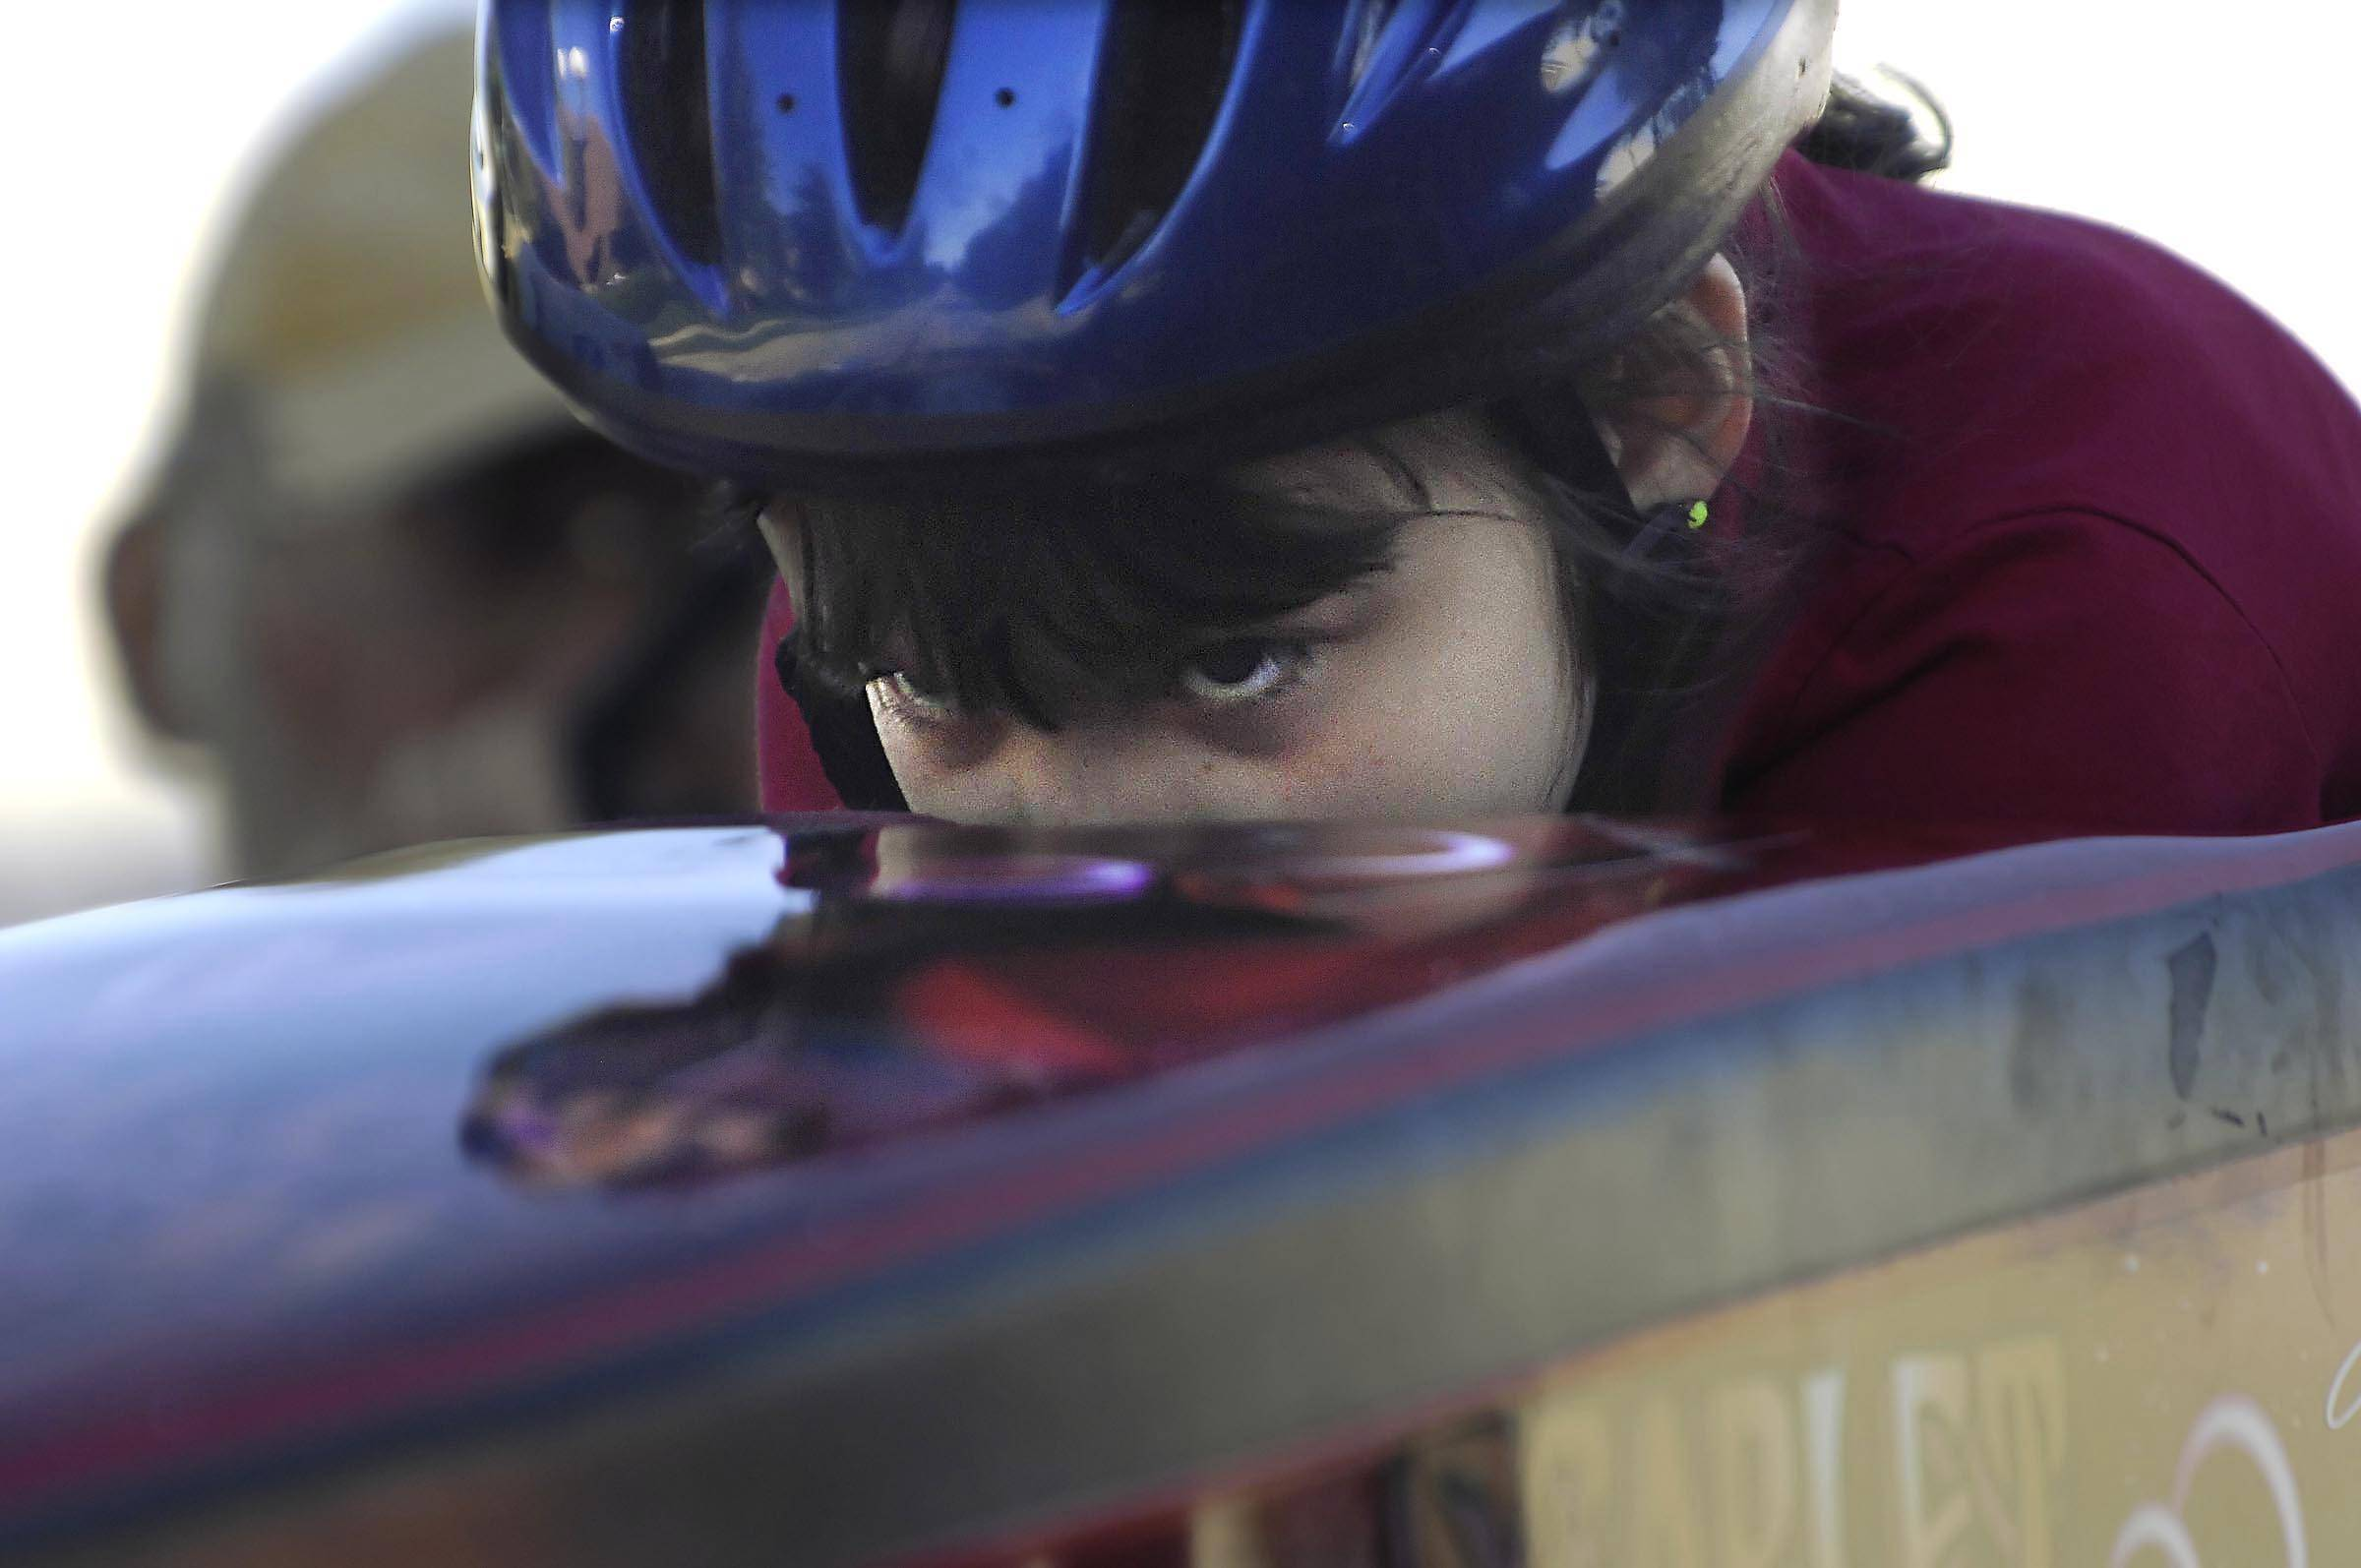 Ava McCollim, 8, of South Elgin has flourished as a soap box derby racer. It has helped her focus and control her health and developmental issues, which include epileptic seizures and autism, according to her mother, Heather. Ava likes how the small car holds her tight, making her feel like a baby that's been swaddled.